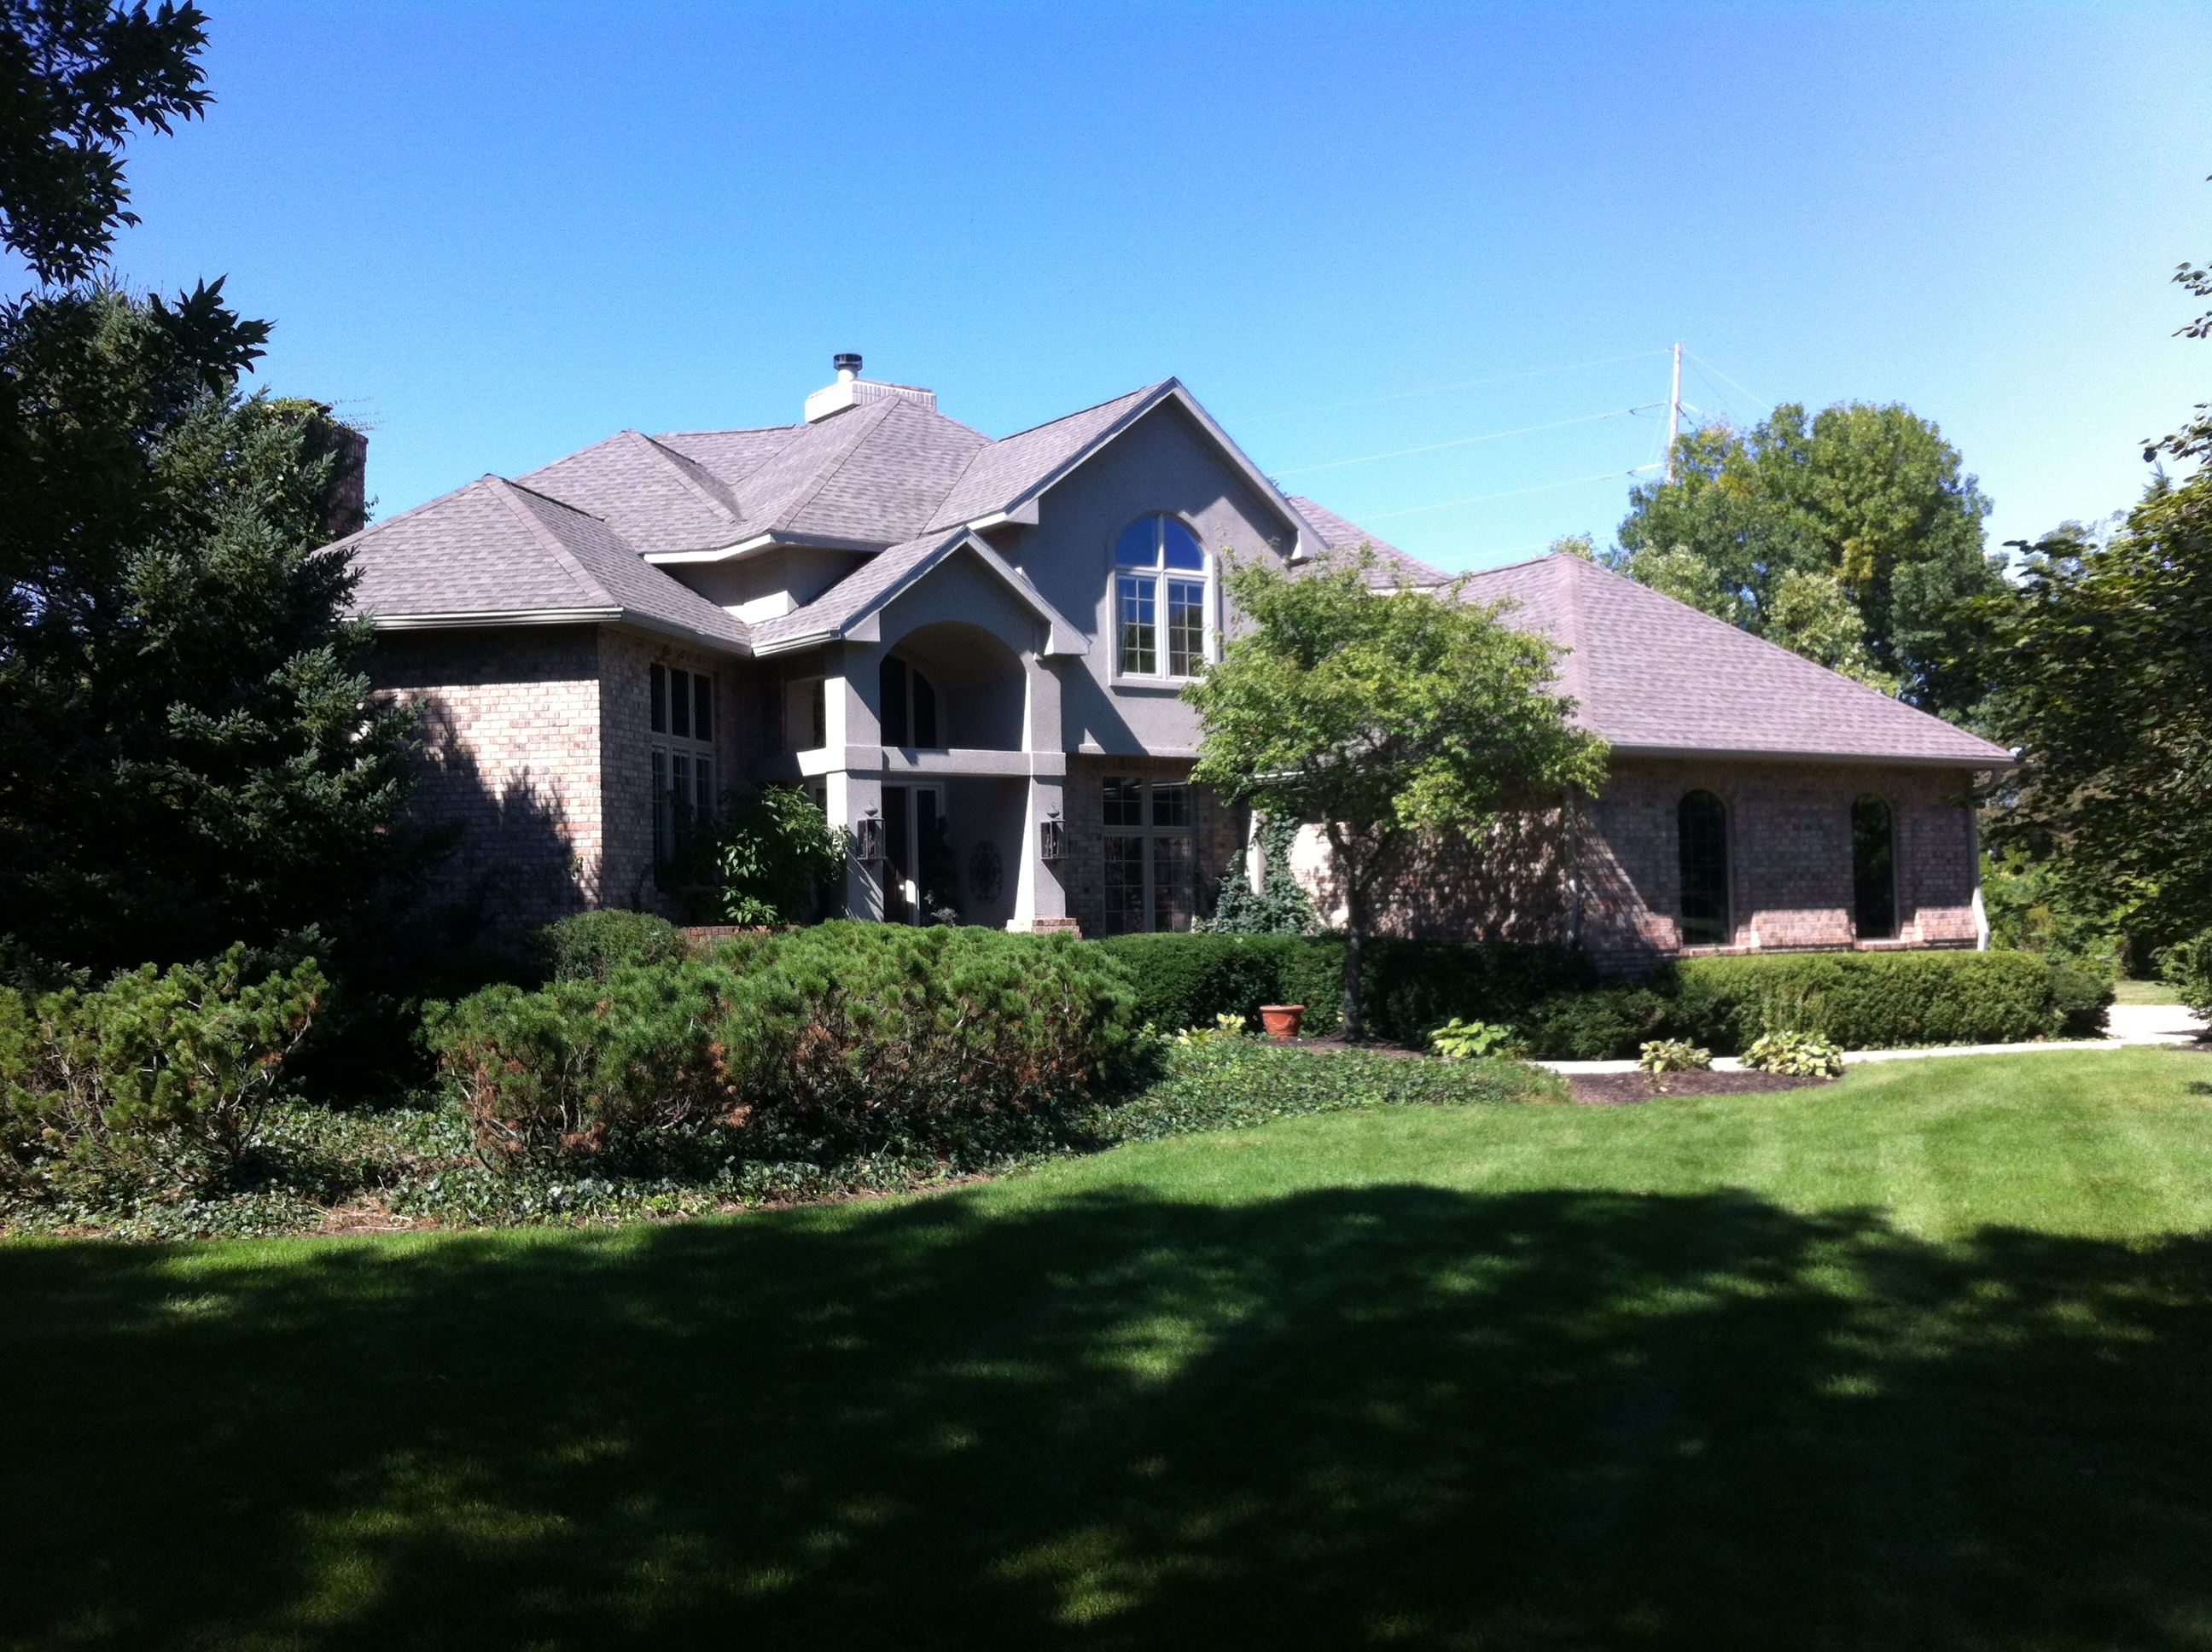 West Lafayette Capilano By The Lake 4 bedroom home for sale near Purdue University